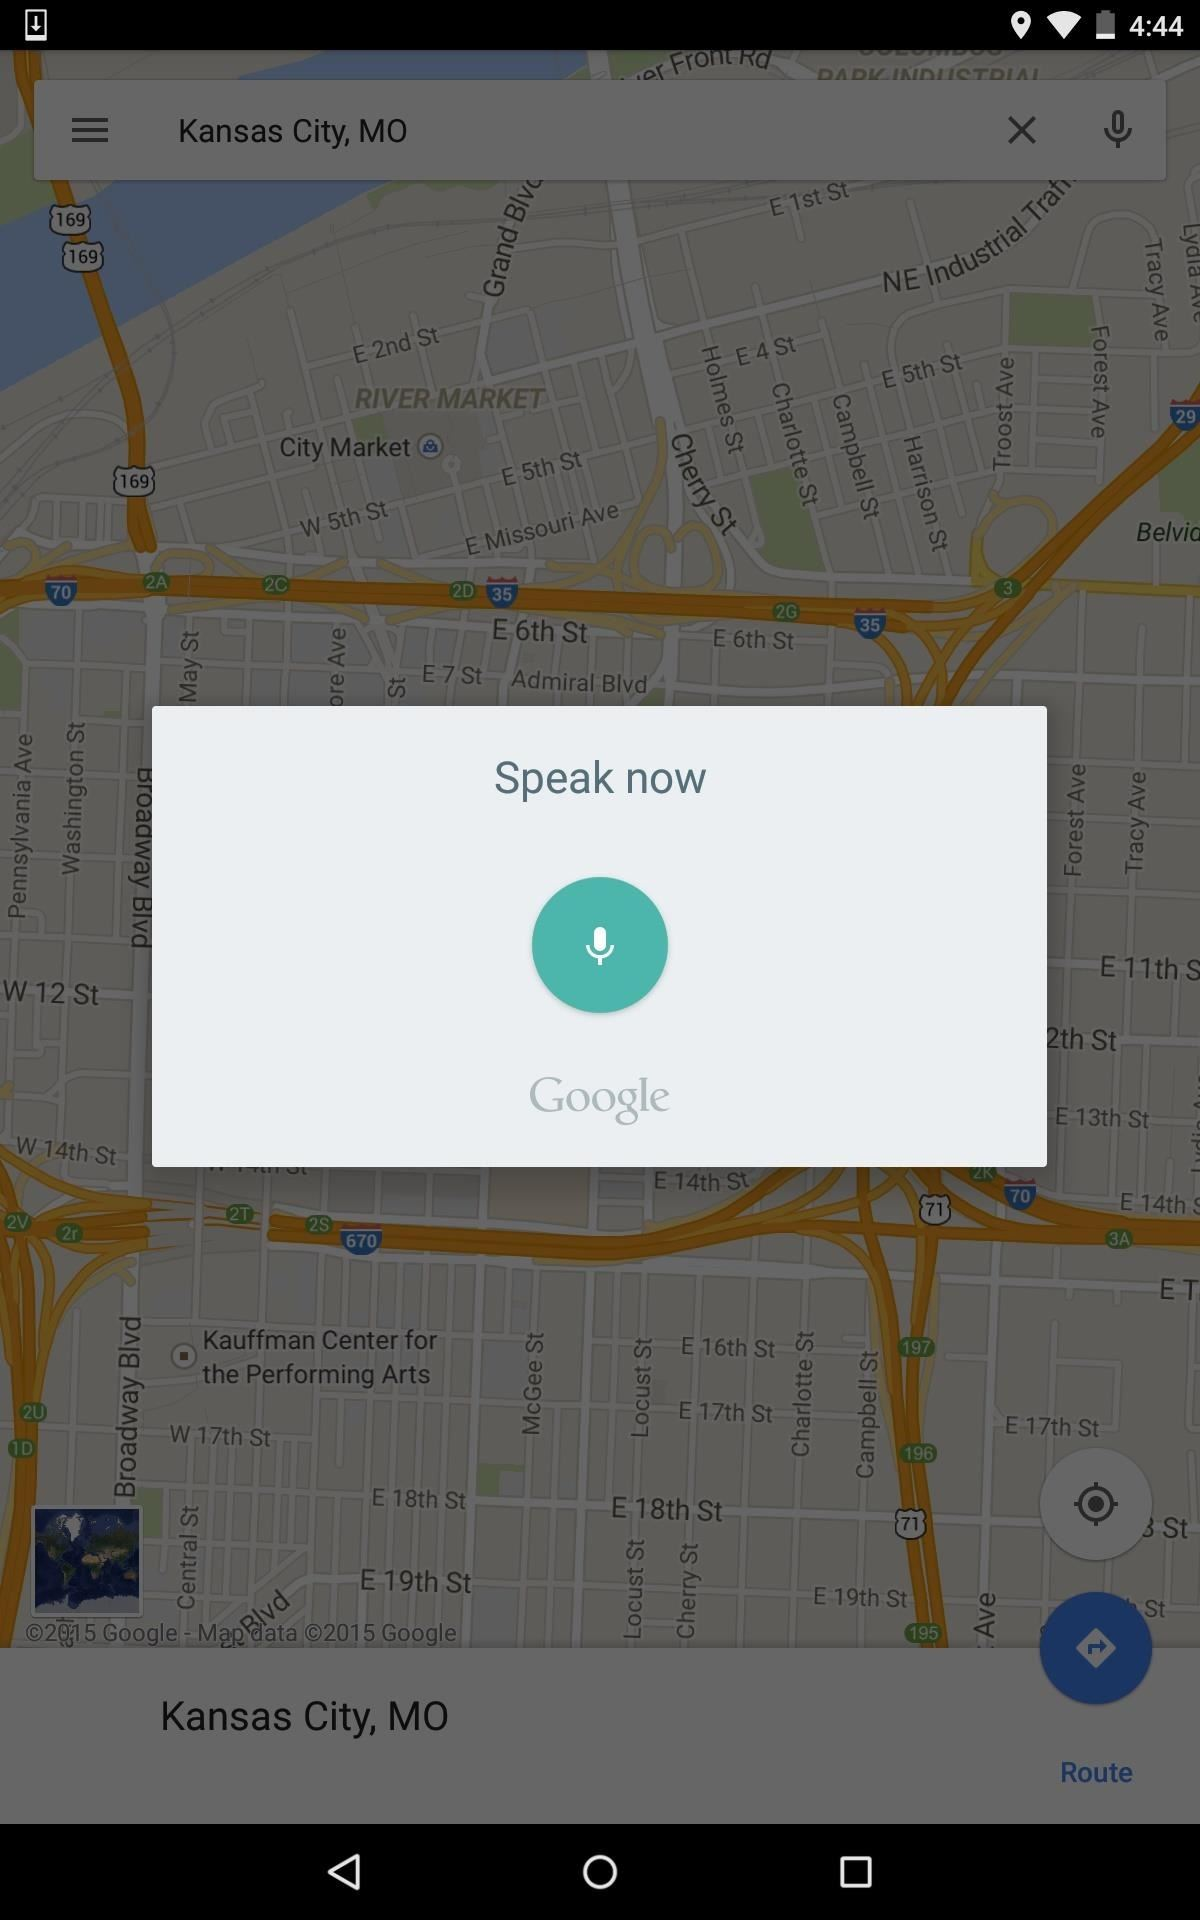 How to Save Locations in Google Maps for Offline Use ... Saving Google Maps Offline on google maps lt, google maps 2014, google maps hidden, google maps lv, google maps windows, google maps search, google maps desktop, google maps 280, google maps web, google maps android, google maps cuba, google maps print, google maps home, google maps iphone, google maps online, google maps de, google maps advertising, google maps mobile, google maps error,